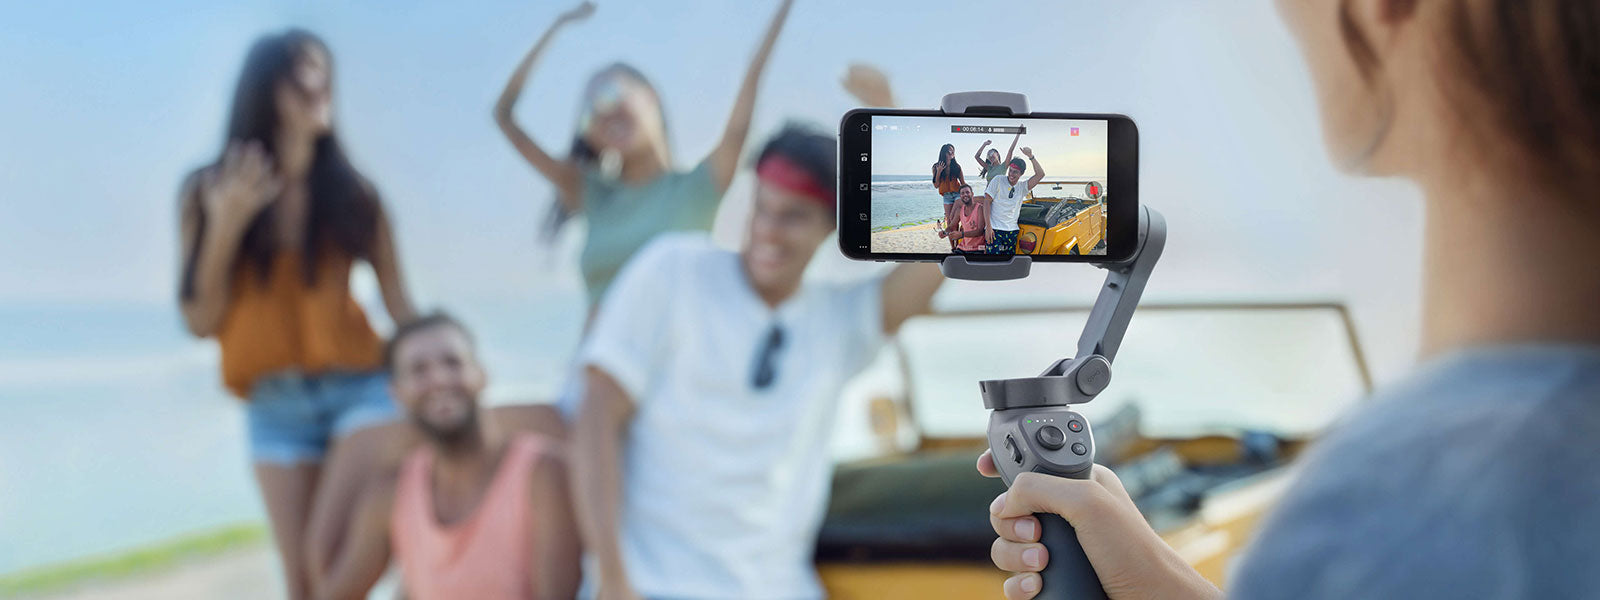 dji osmo mobile 3 taking photo of people